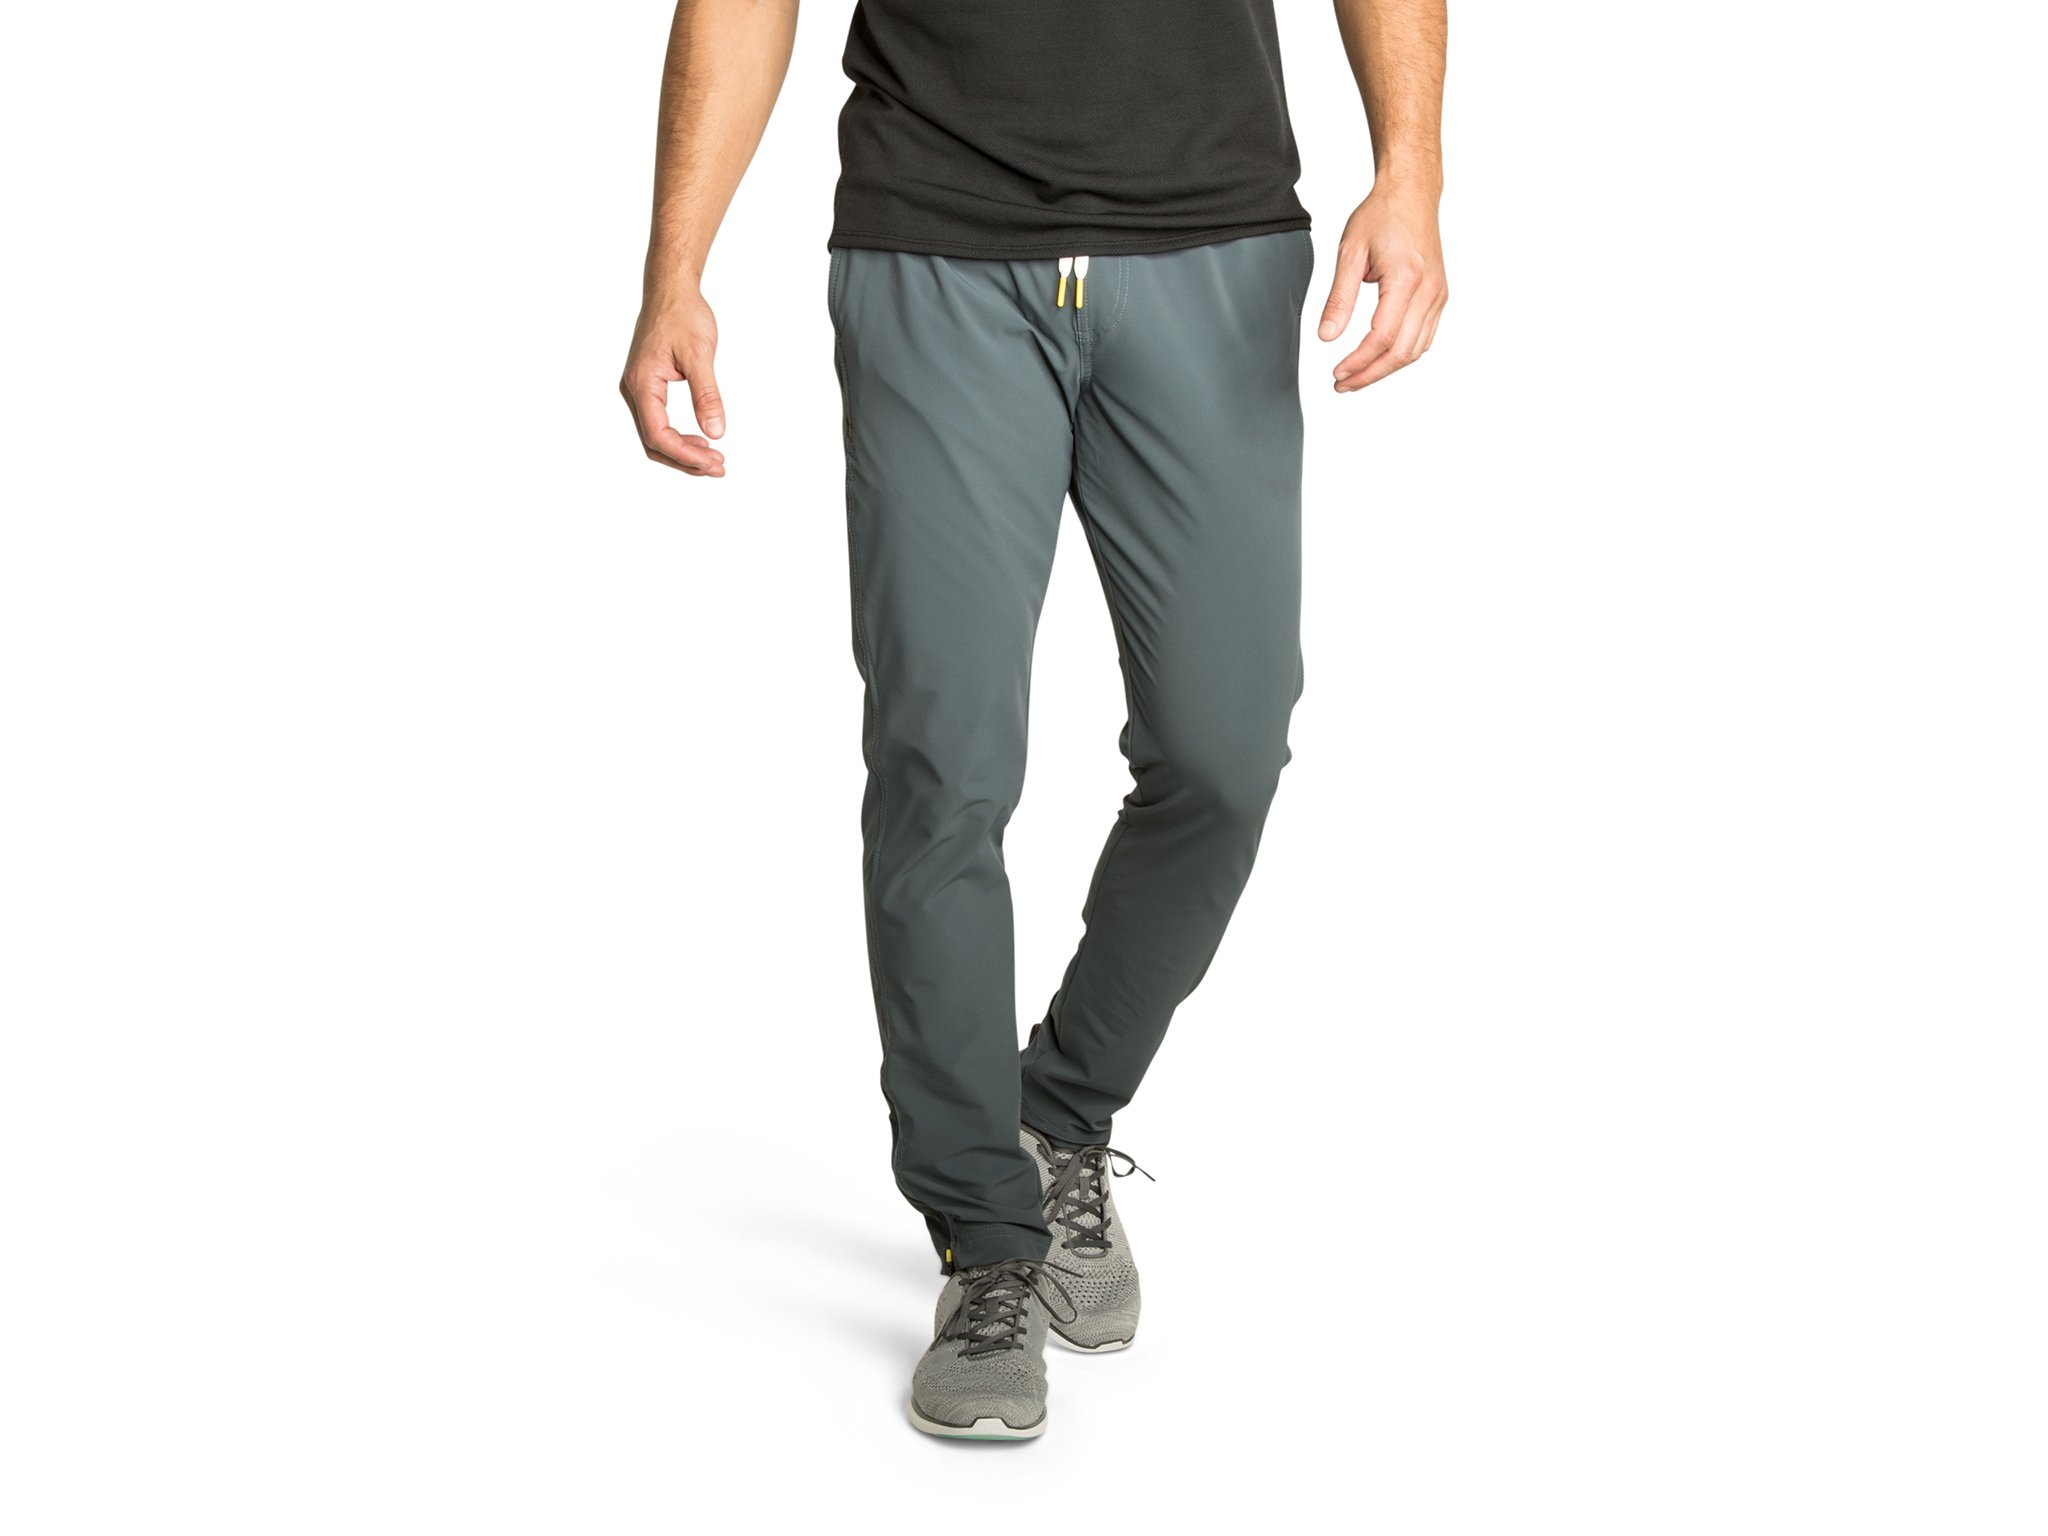 OLIVERS Apparel, Water Repellant, Athletic Cut, 4-Way Stretch, Bradbury Jogger Pants, 31 inch Inseam - Cobalt - X Large É